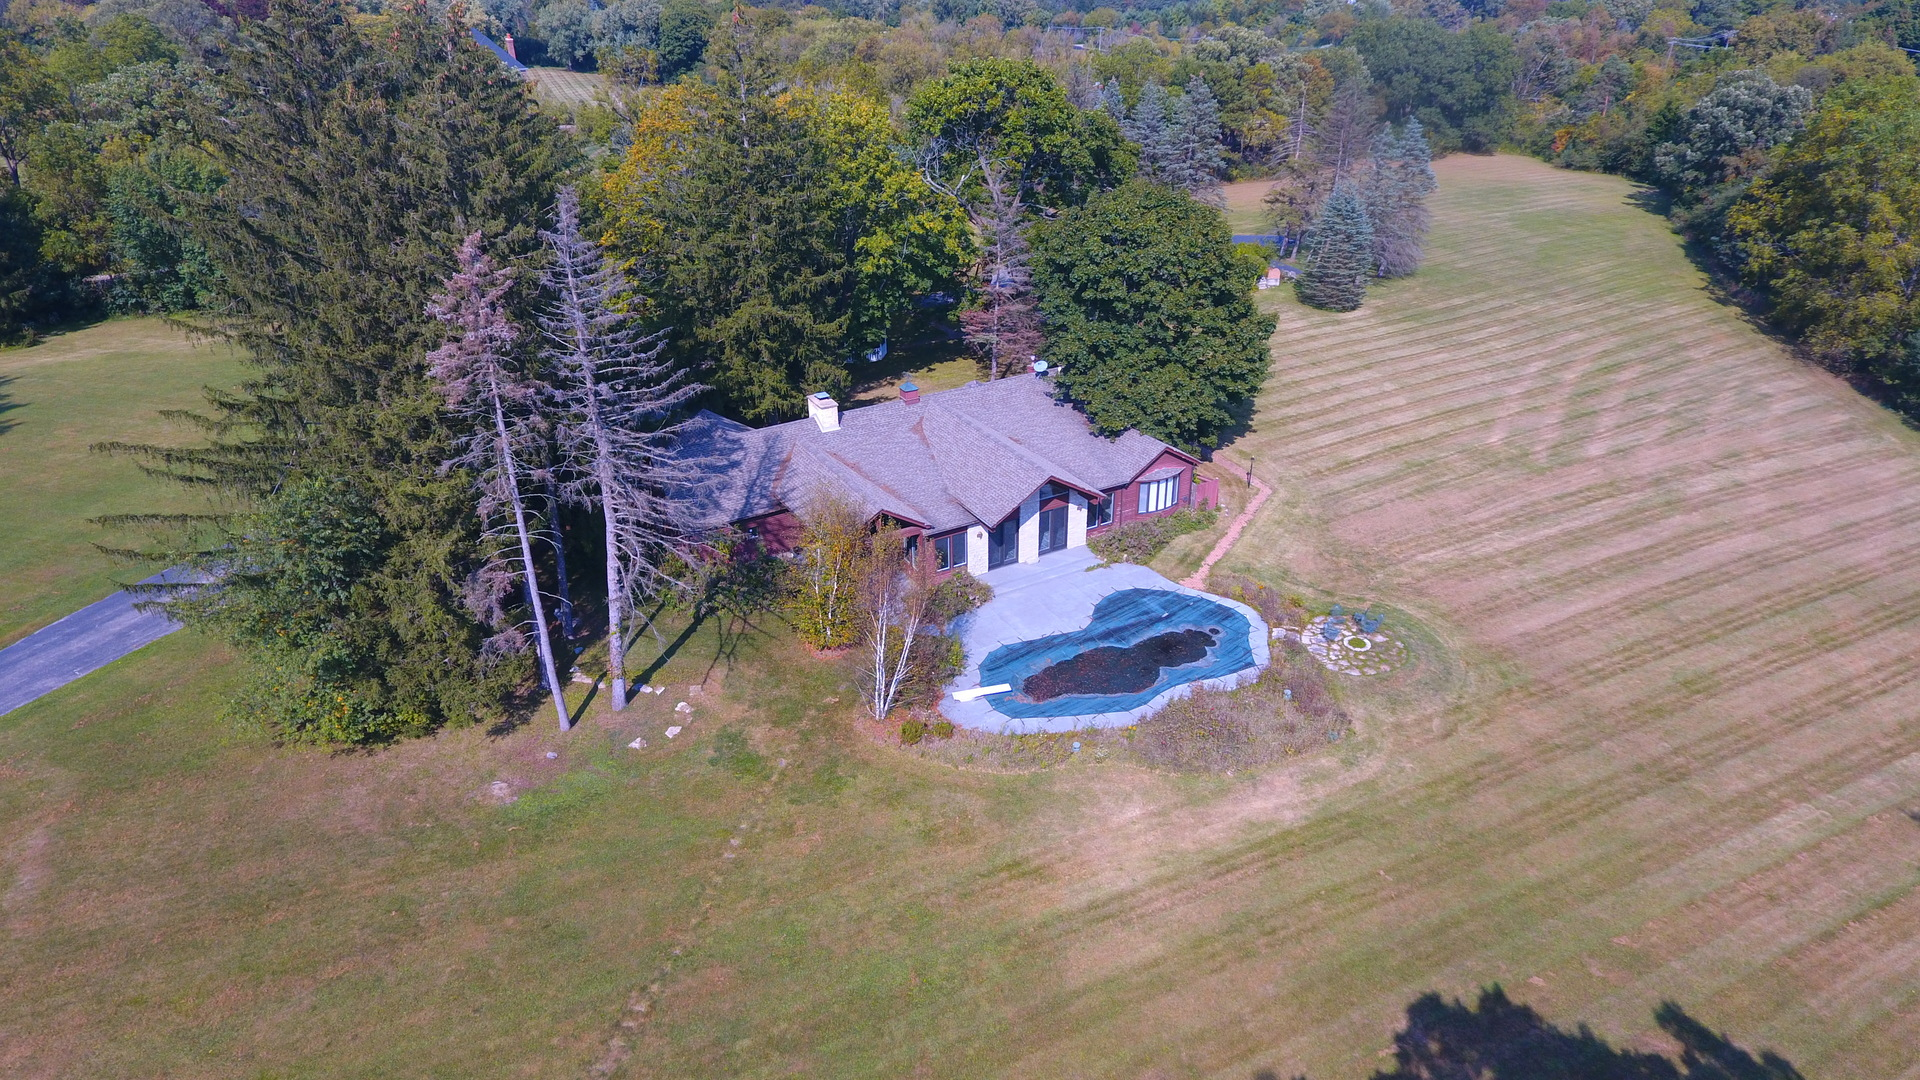 527 West Merri Oaks Road, Barrington Hills, Illinois 60010